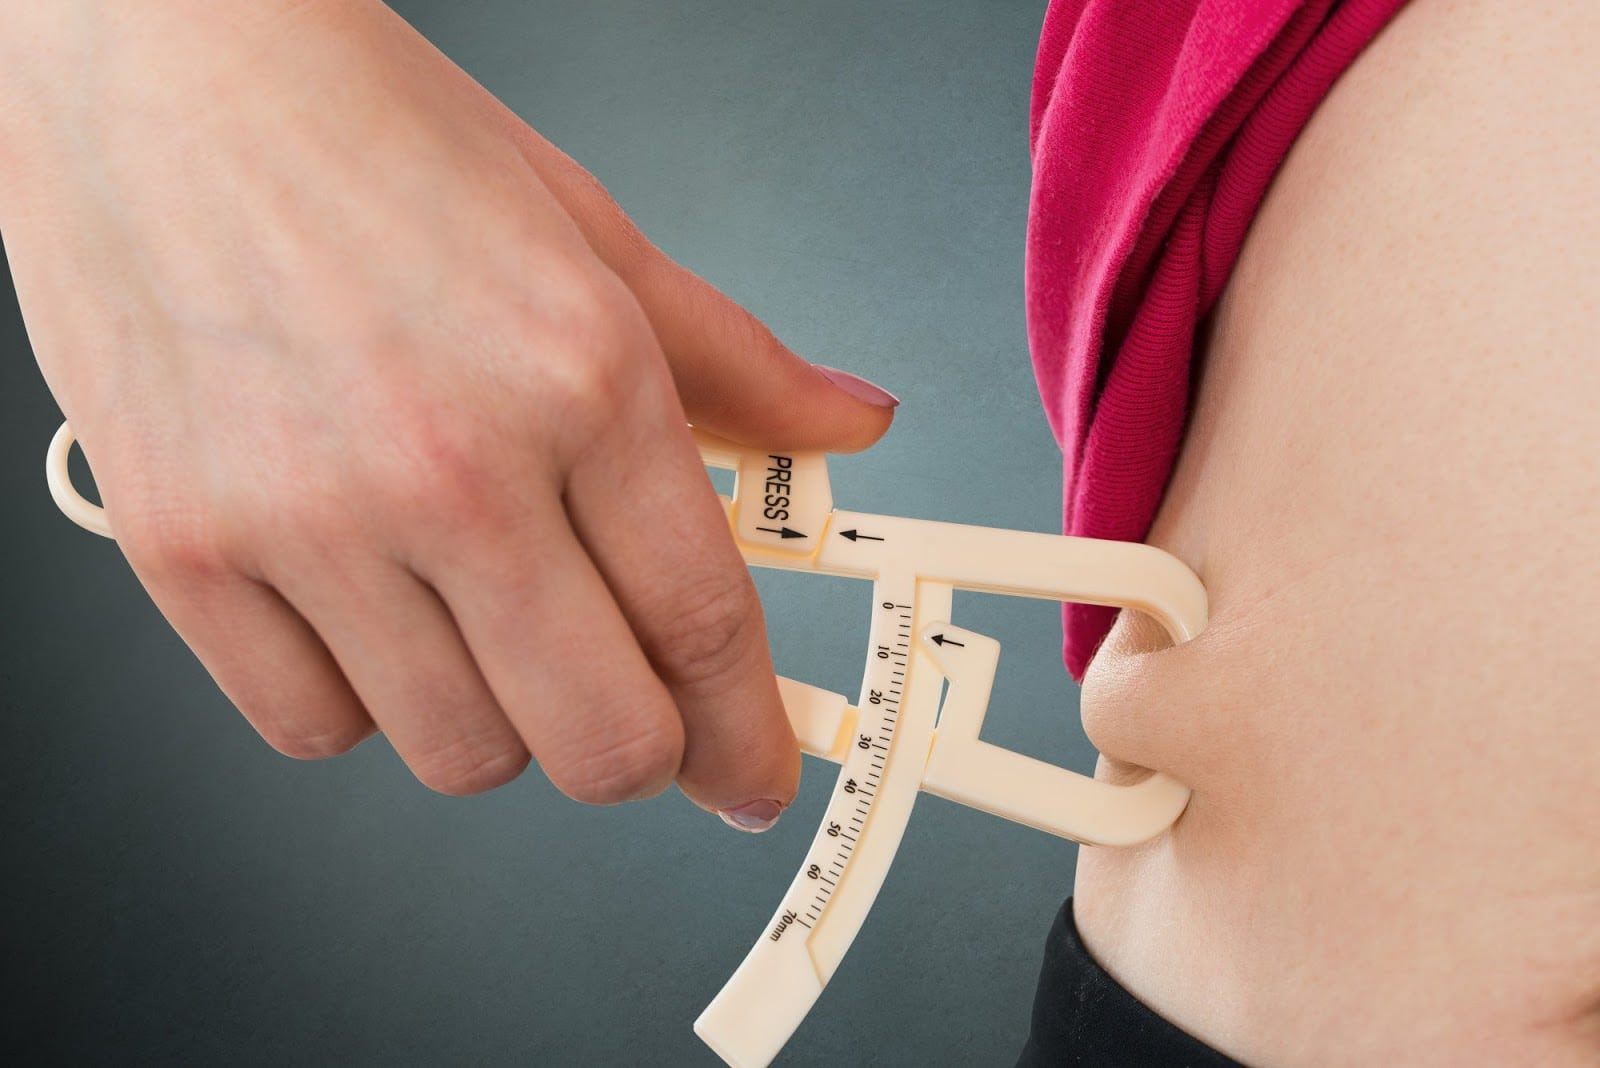 How Vitamins Help Weight Loss: Chewable Bariatric Vitamins Vs. Patches